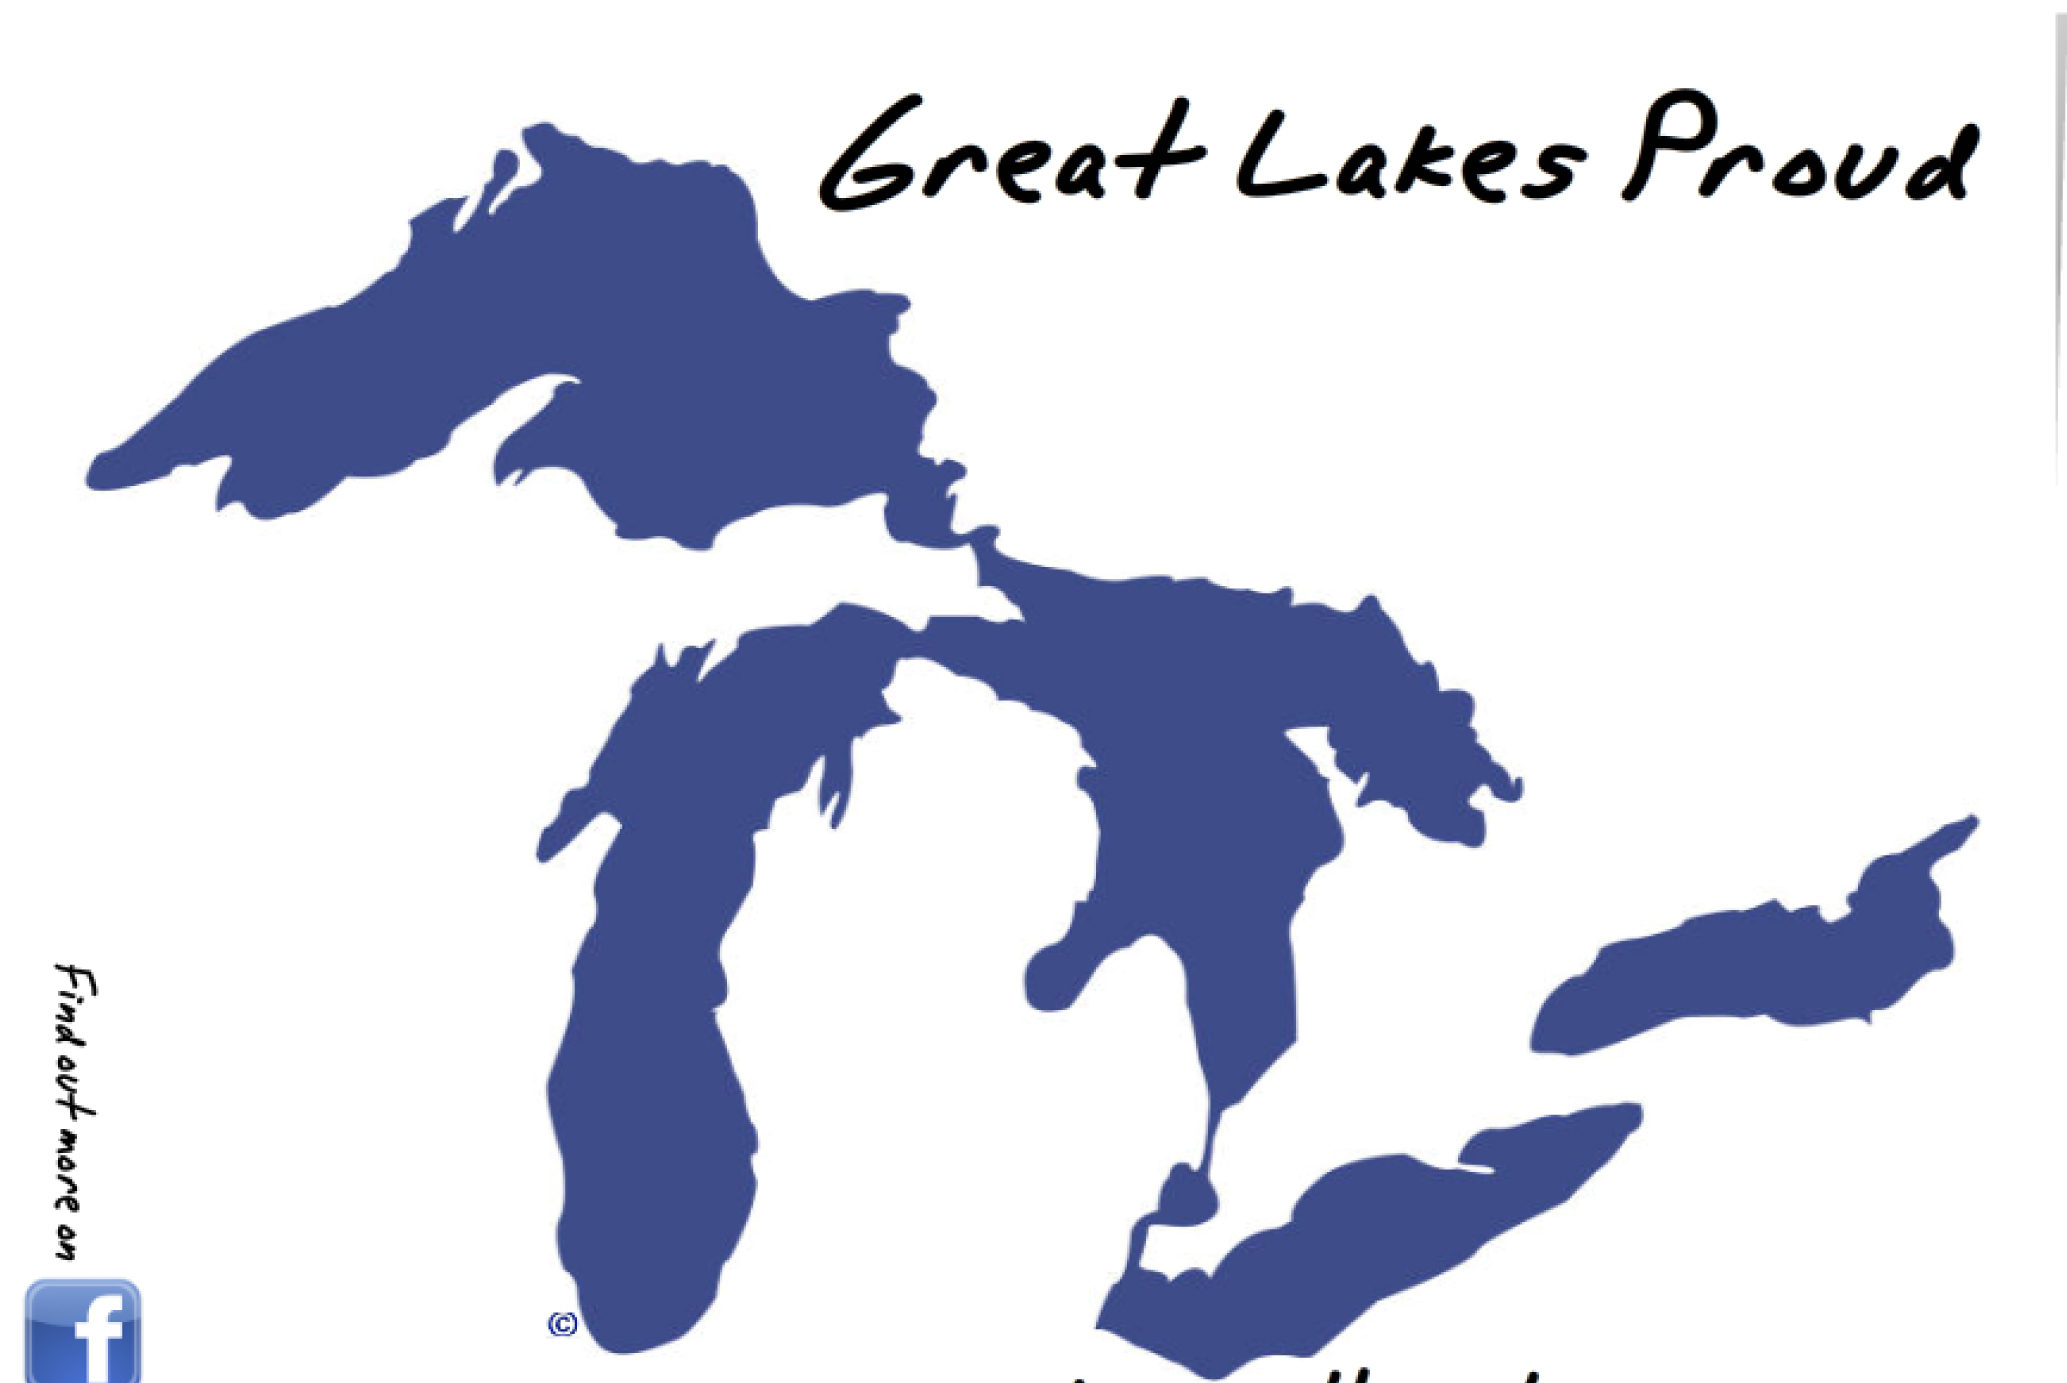 Sticking With The Great Lakes